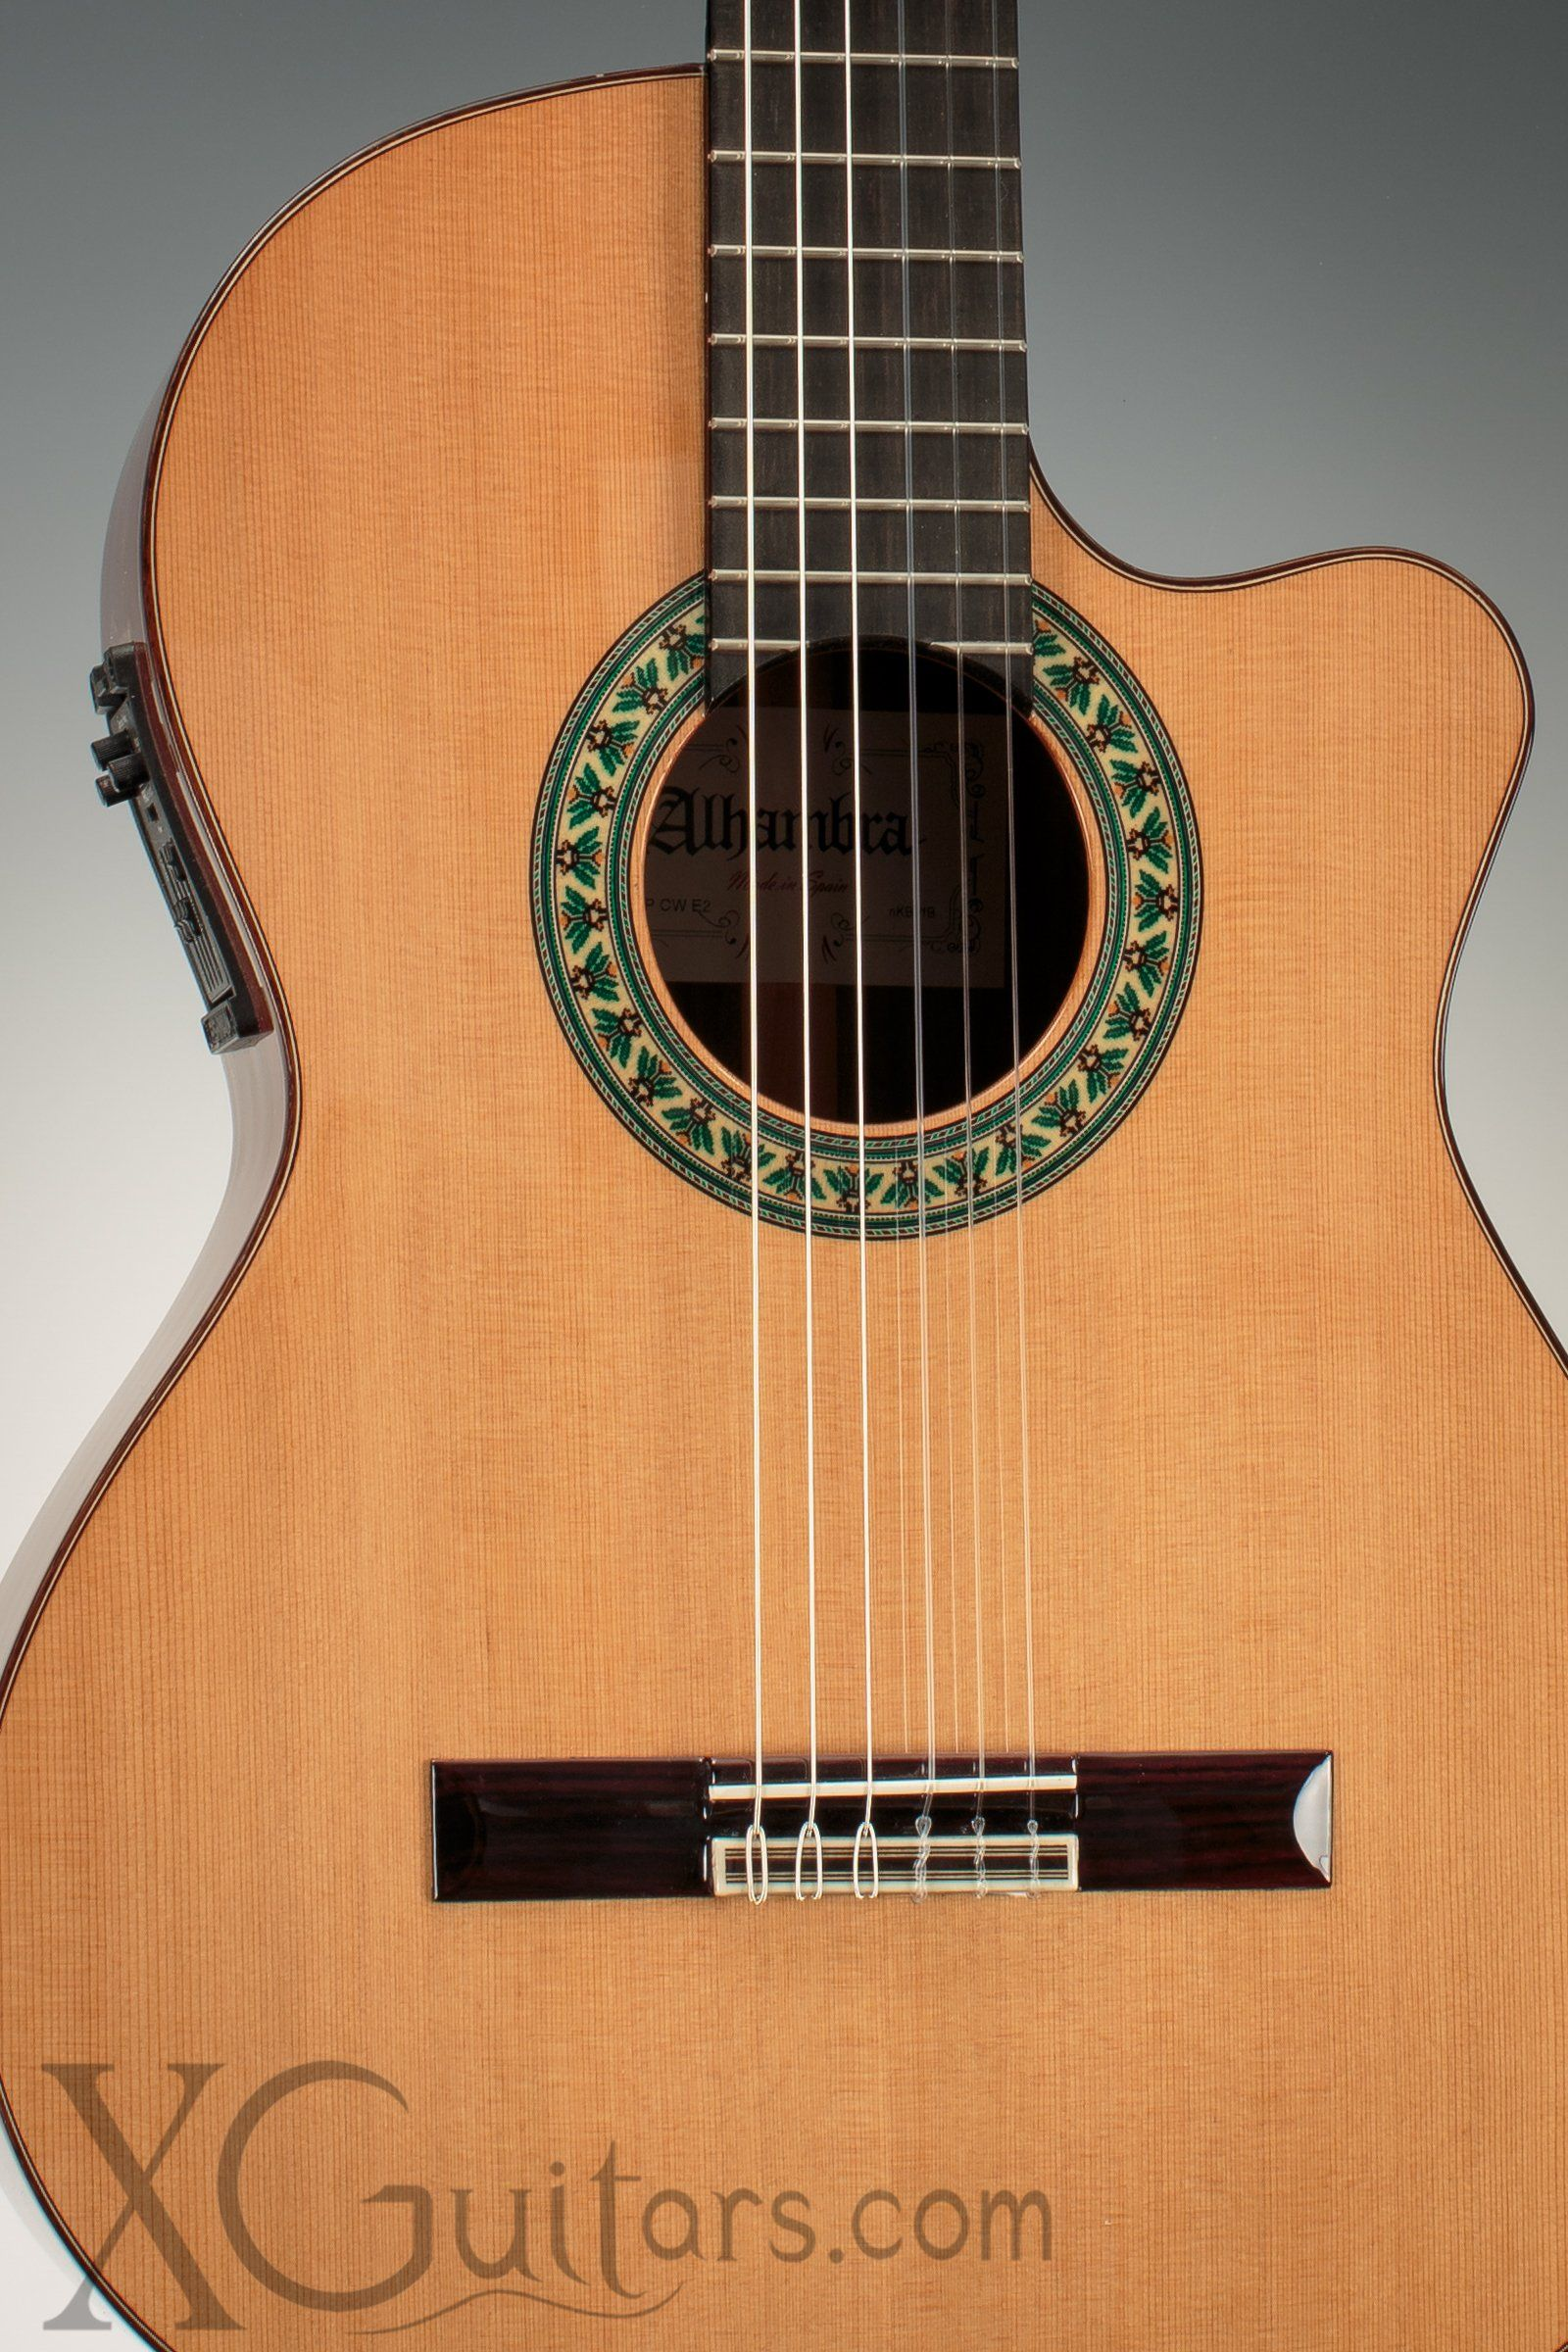 Alhambra 5p Cutaway Classical Guitar With Fishman Classic M Preamp